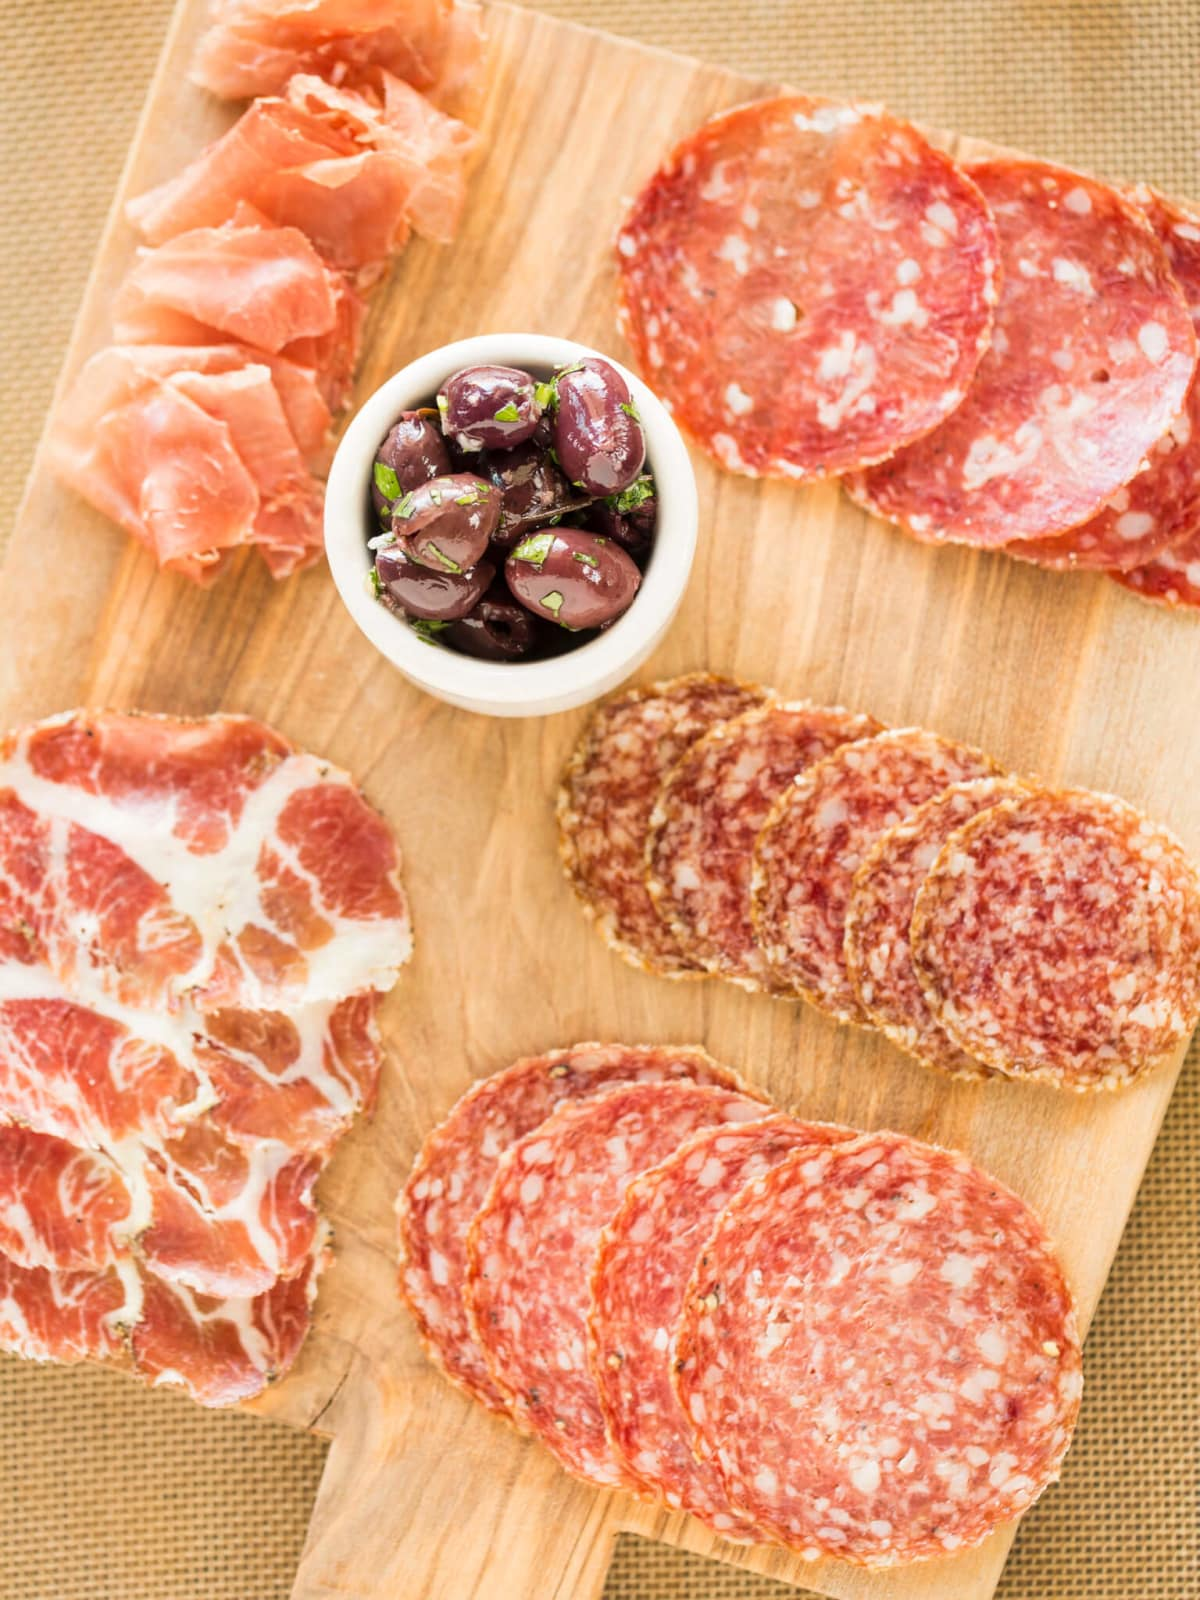 B&B Butchers charcuterie platter